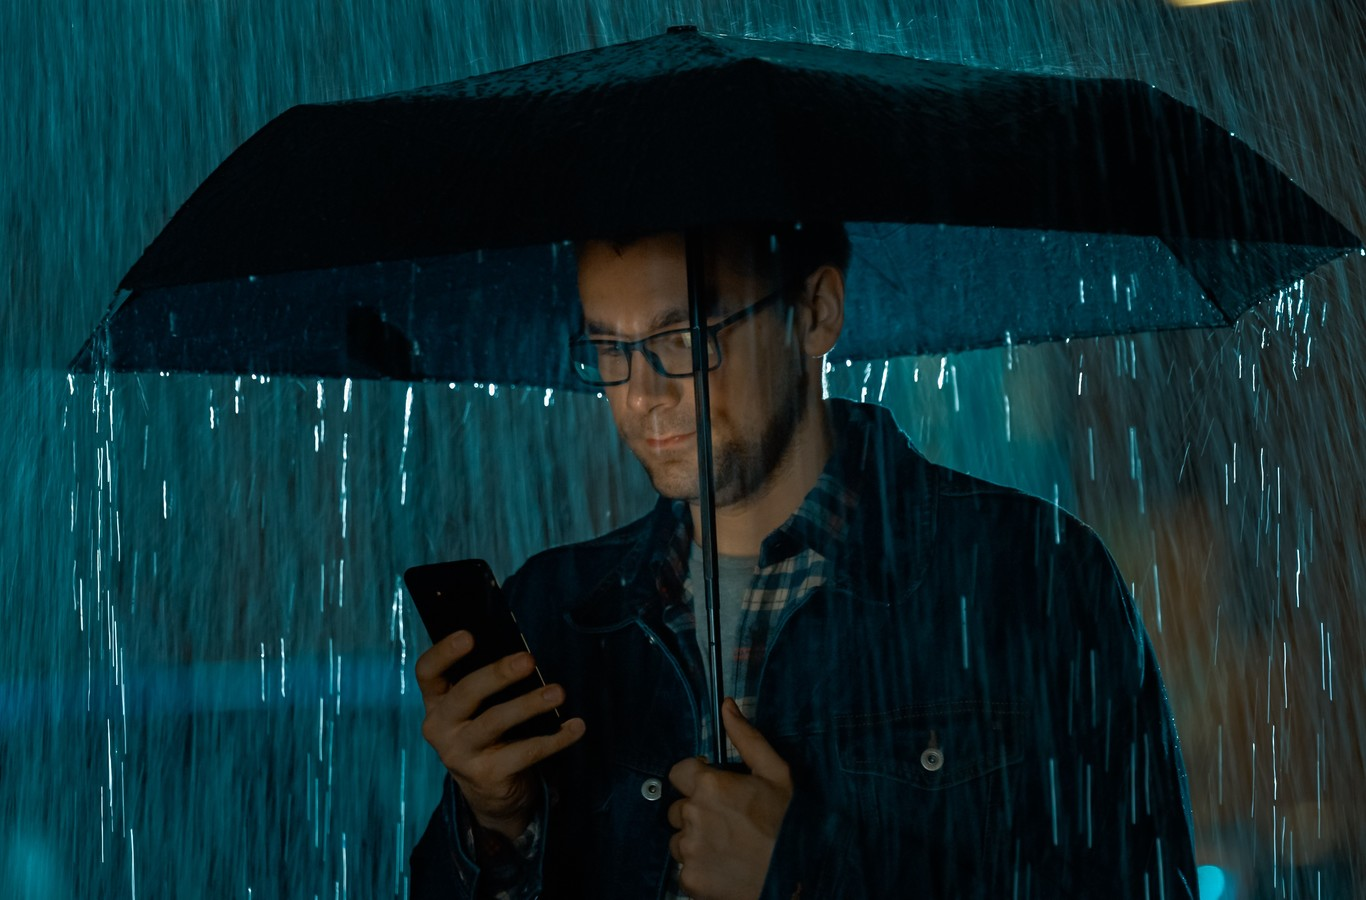 Man in Glasses, Wearing a Jeans Coat and Square Shirt is Using a Smartphone Under an Umbrella